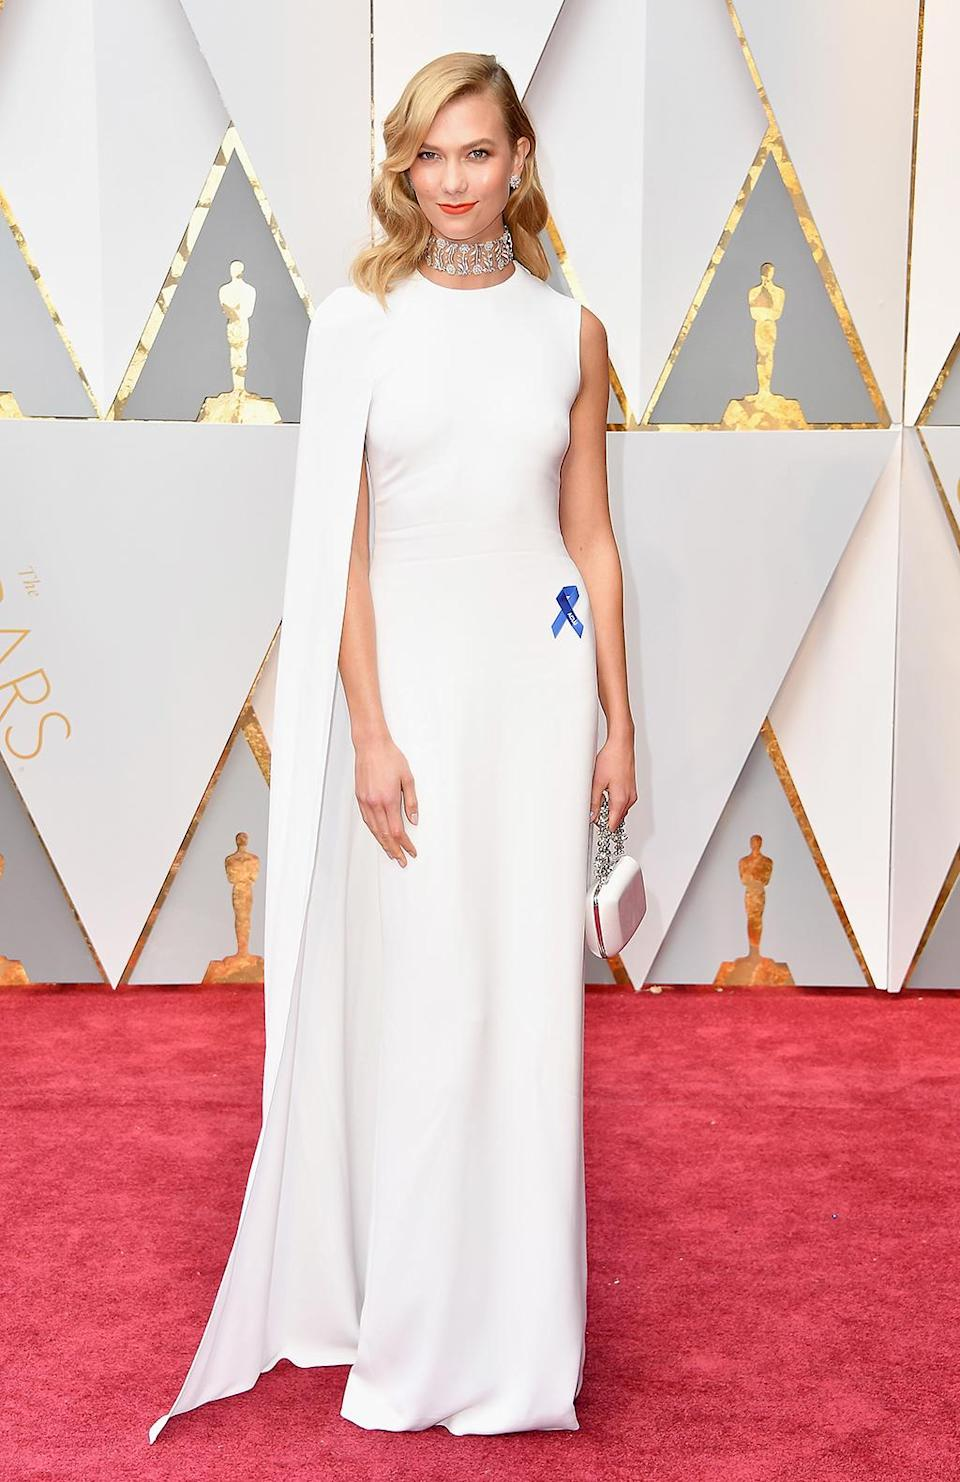 <p>Model Karlie Kloss attends the 89th Annual Academy Awards at Hollywood & Highland Center on February 26, 2017 in Hollywood, California. (Photo by Steve Granitz/WireImage) </p>